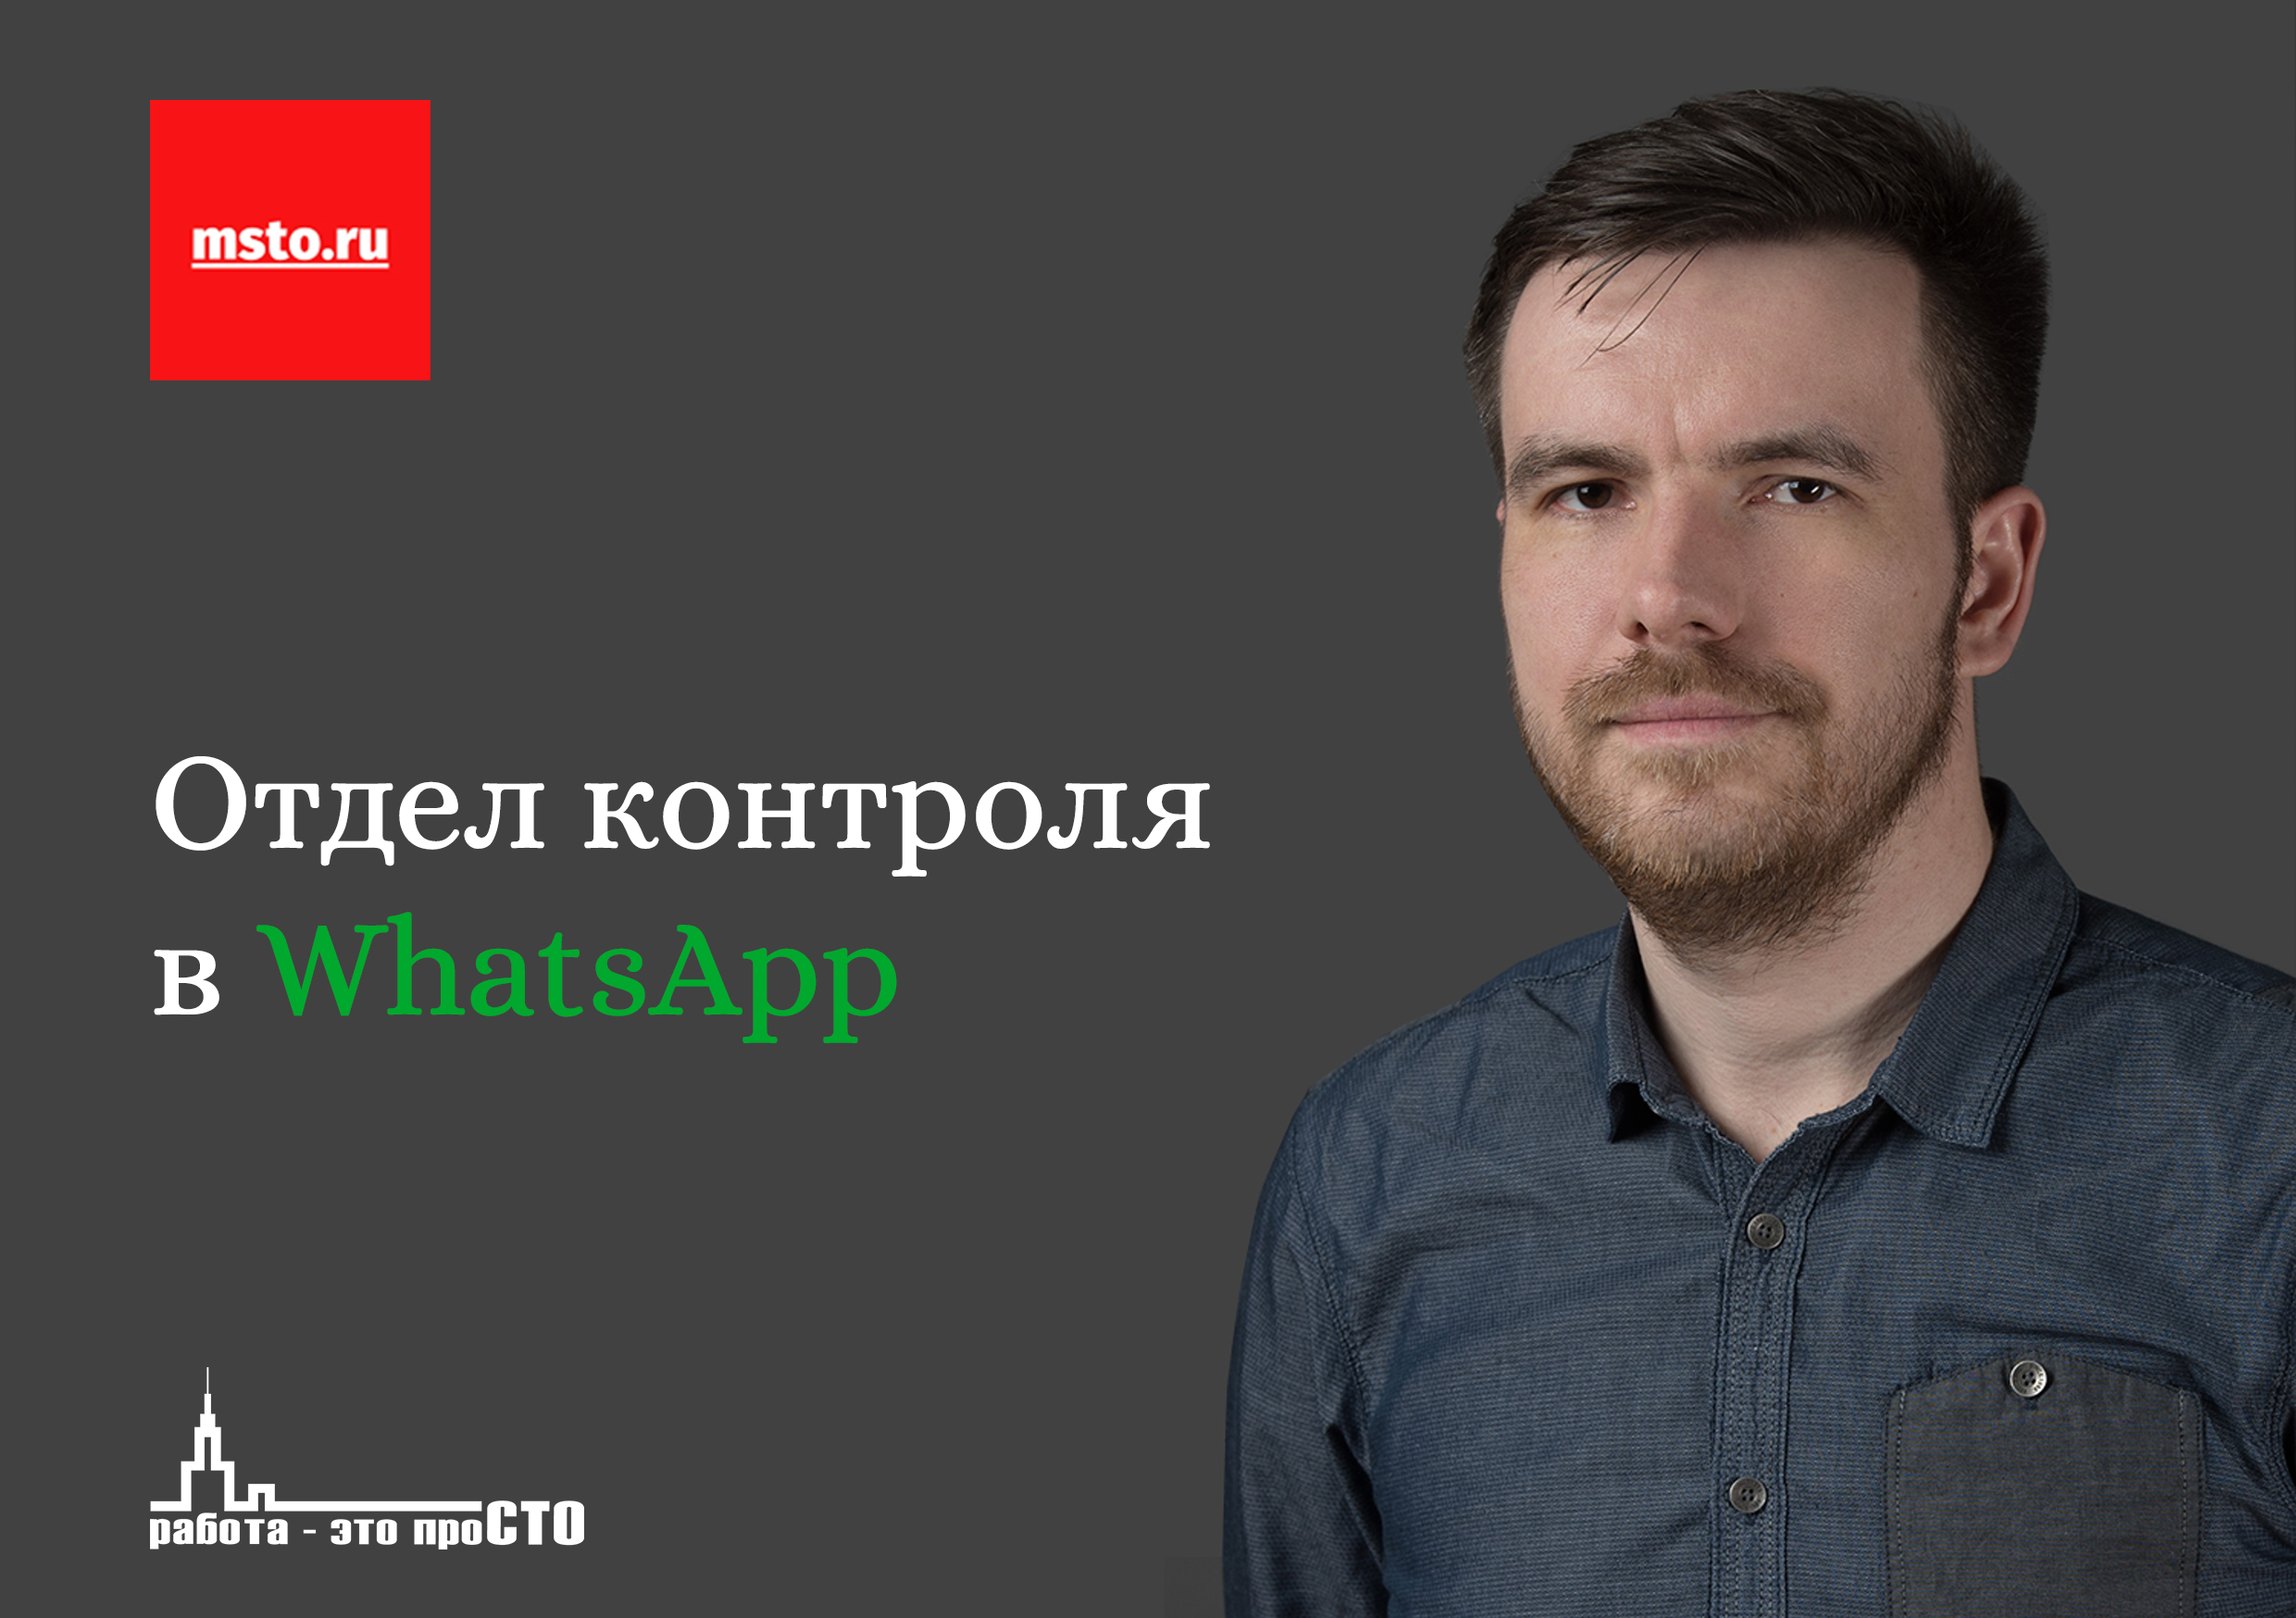 Отдел контроля в WhatsApp